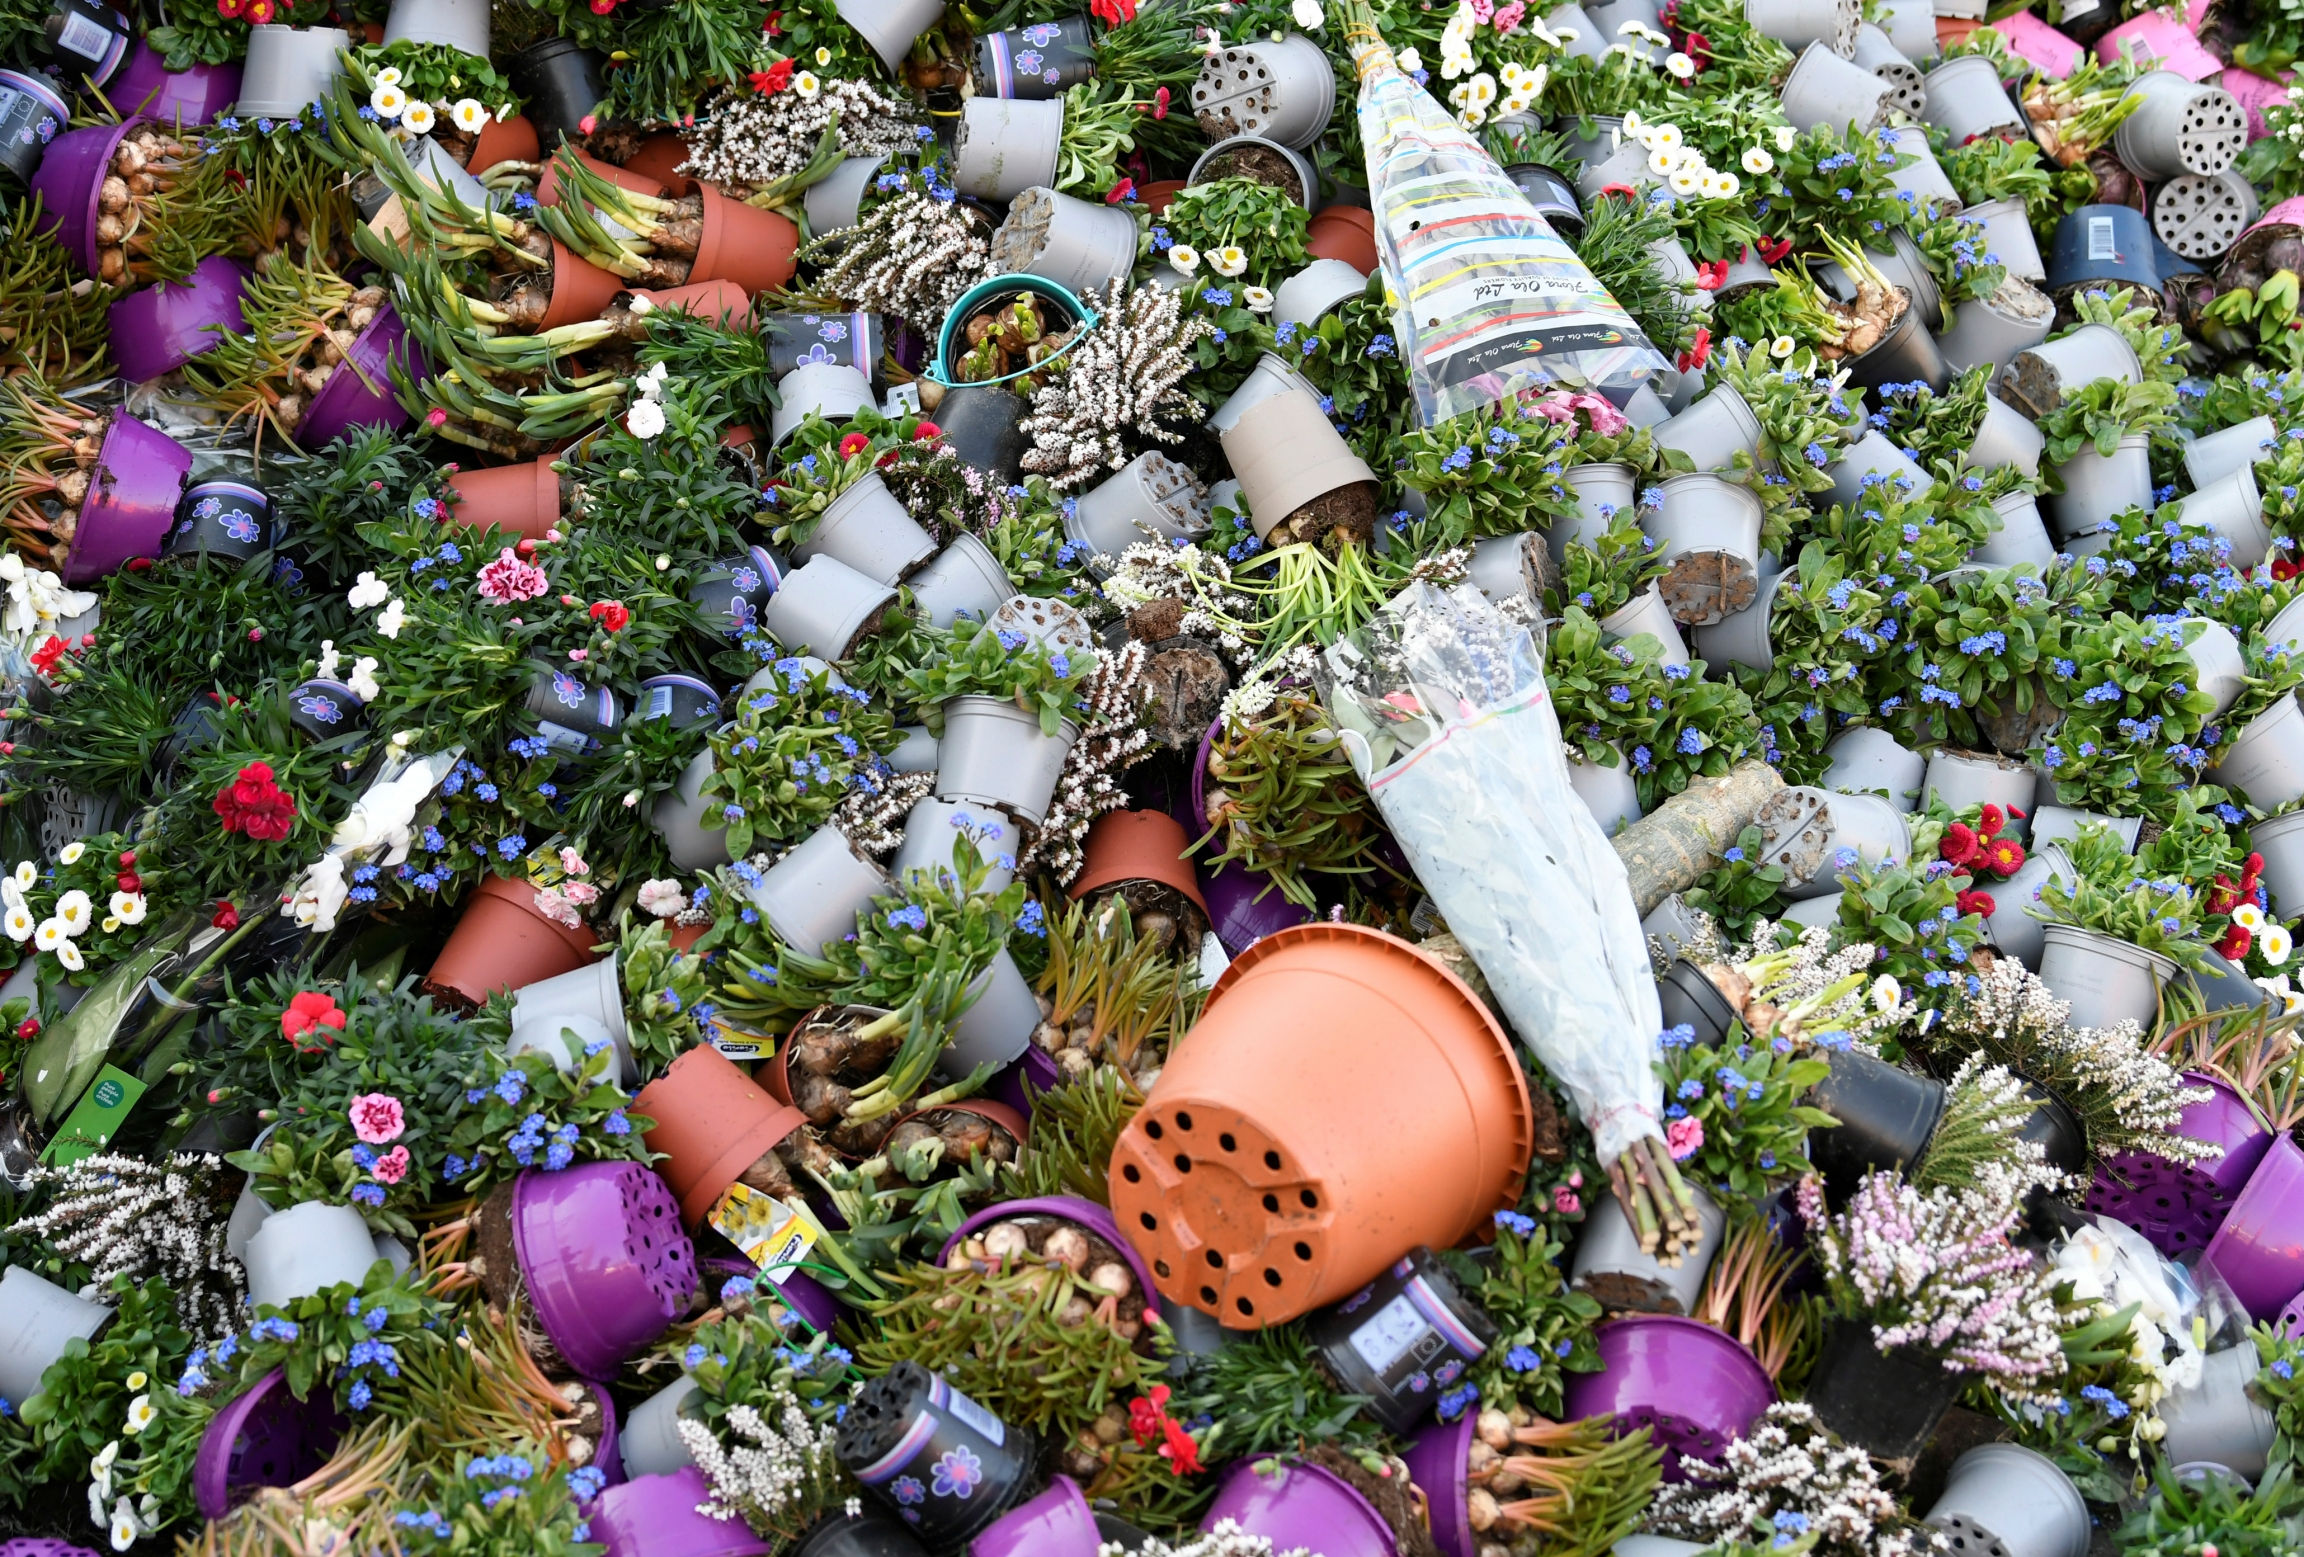 Surplus flowers are destroyed at a waste place next to the flower auction in Honselersdijk, Netherlands, March 27, 2020.